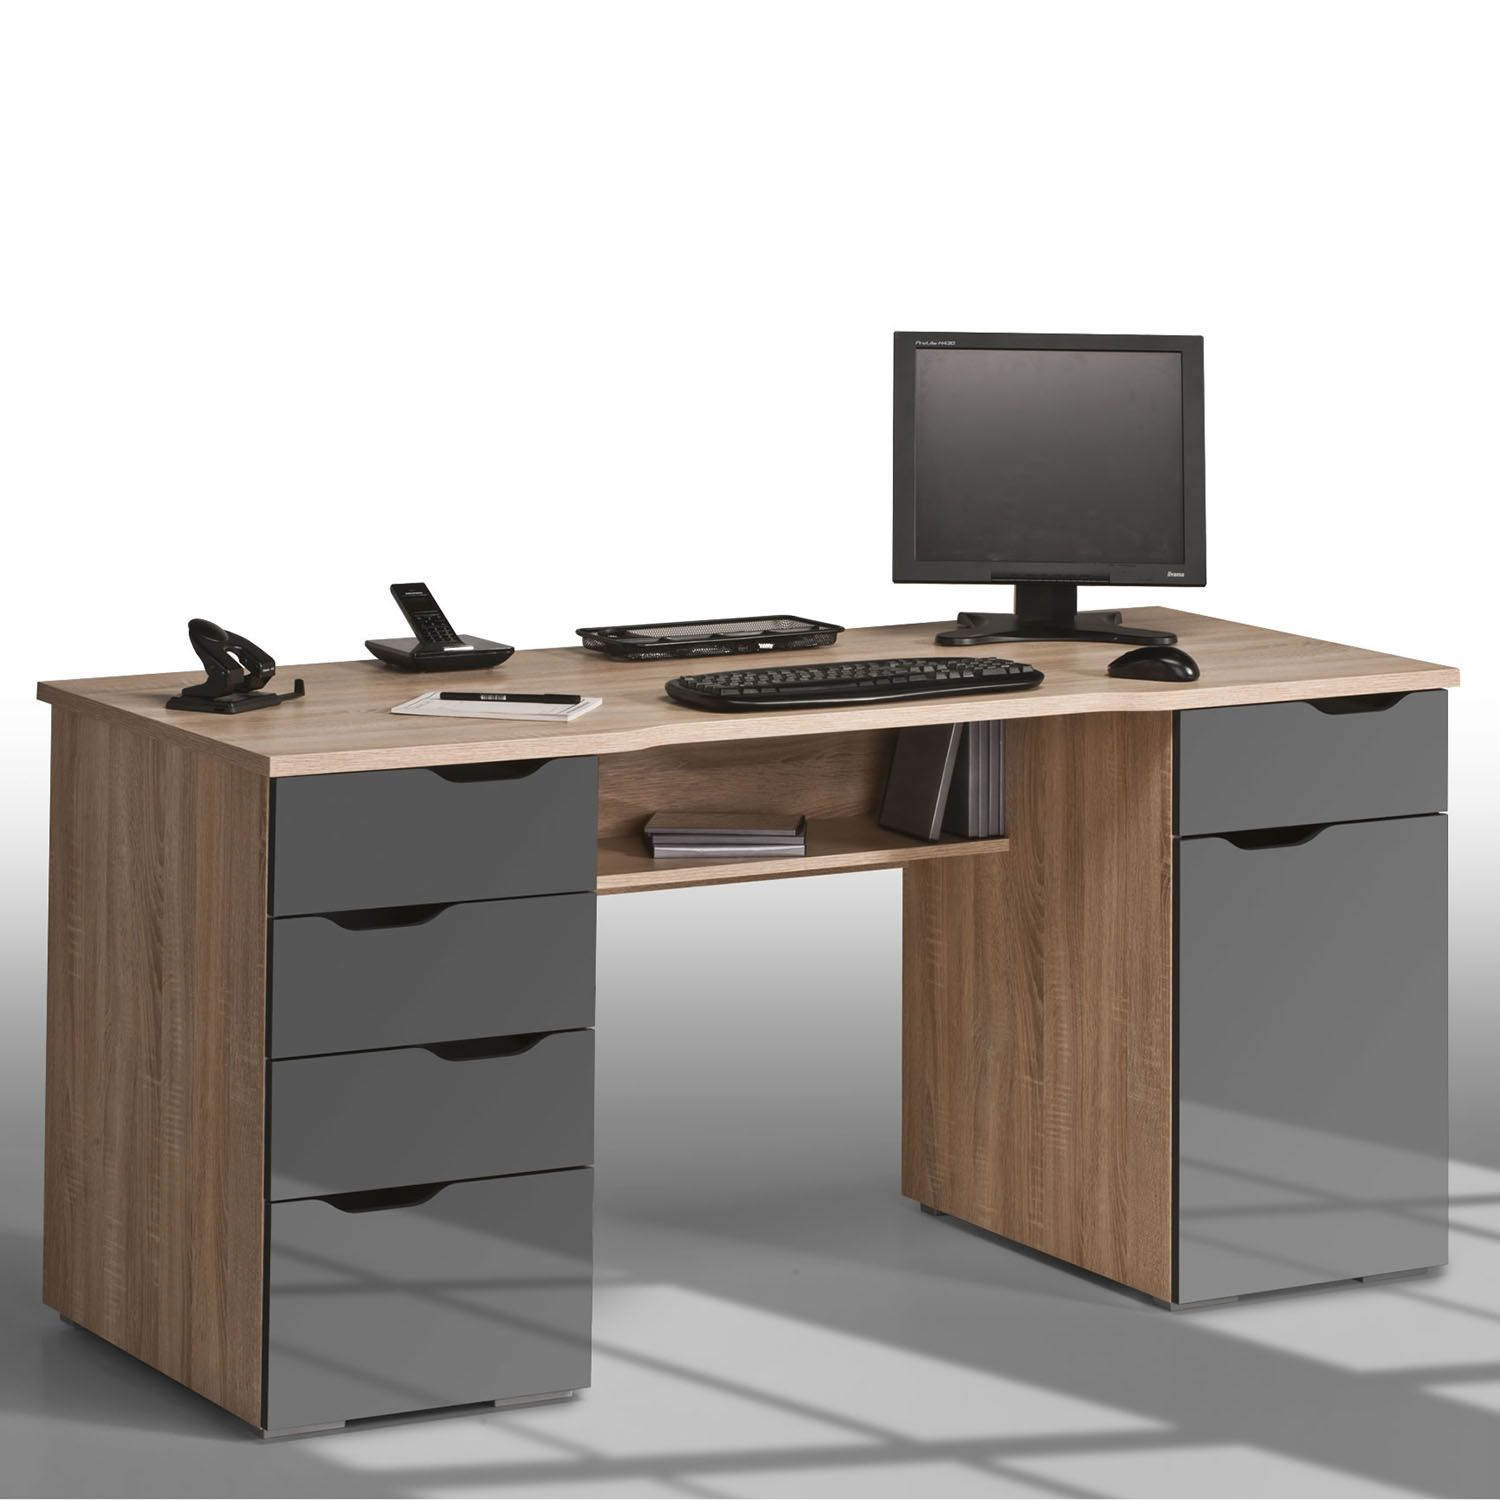 Home Office Furniture Next Day Delivery From Worlds Everything For The